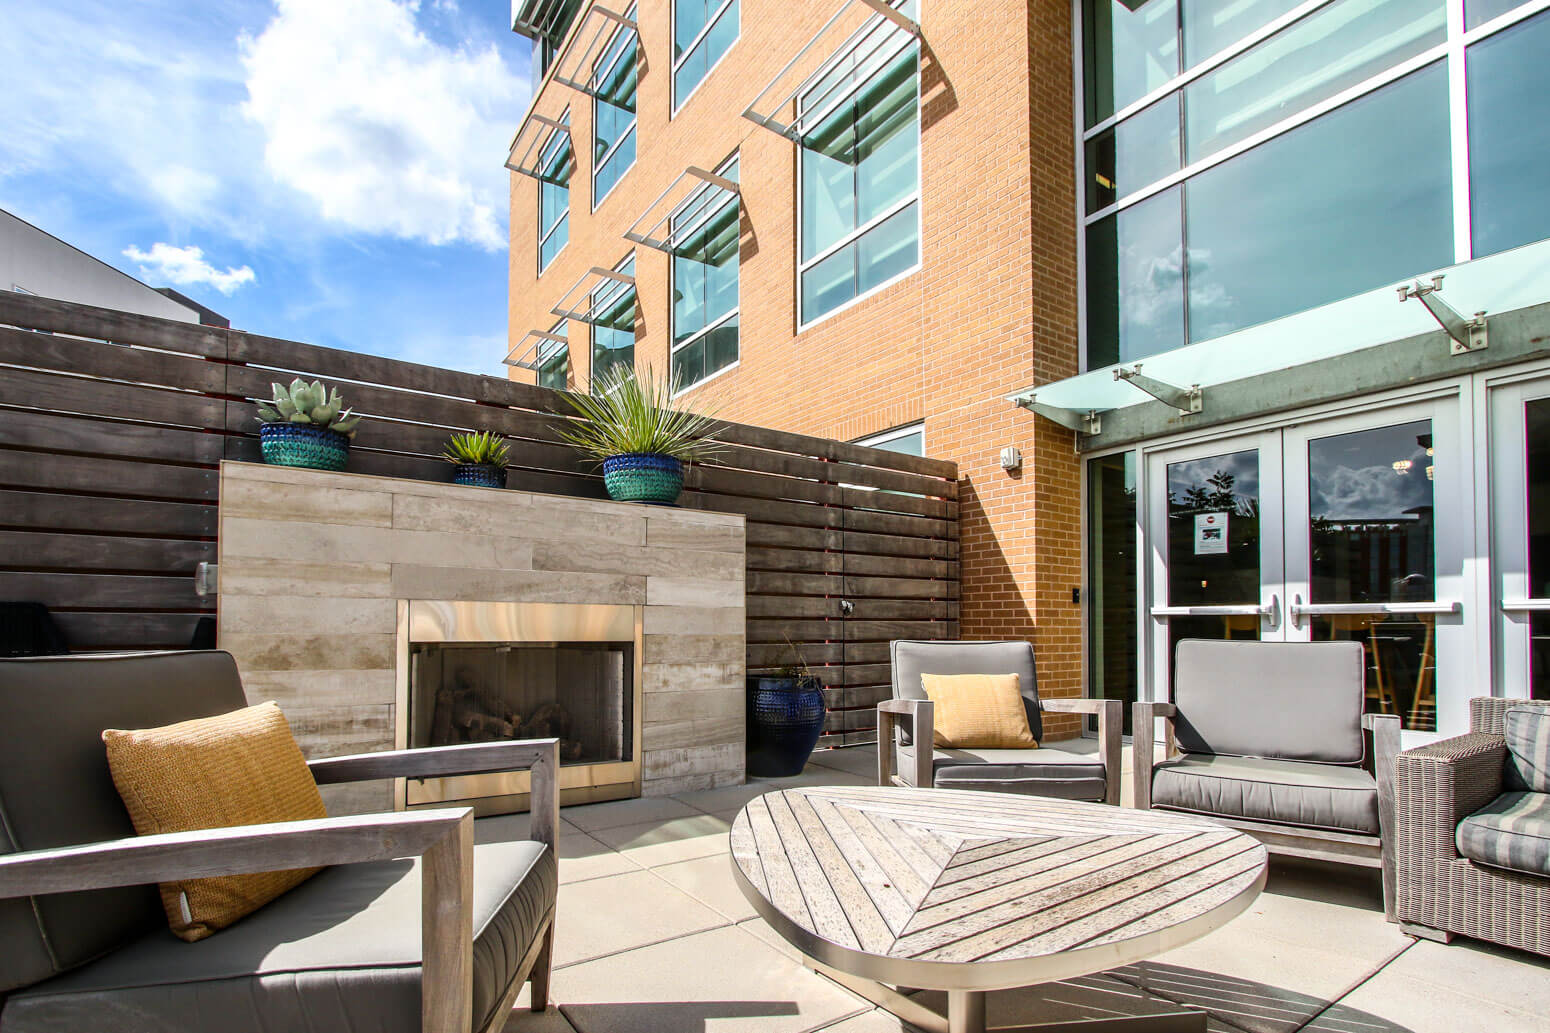 HomeAway Austin Office Killer Spaces-16